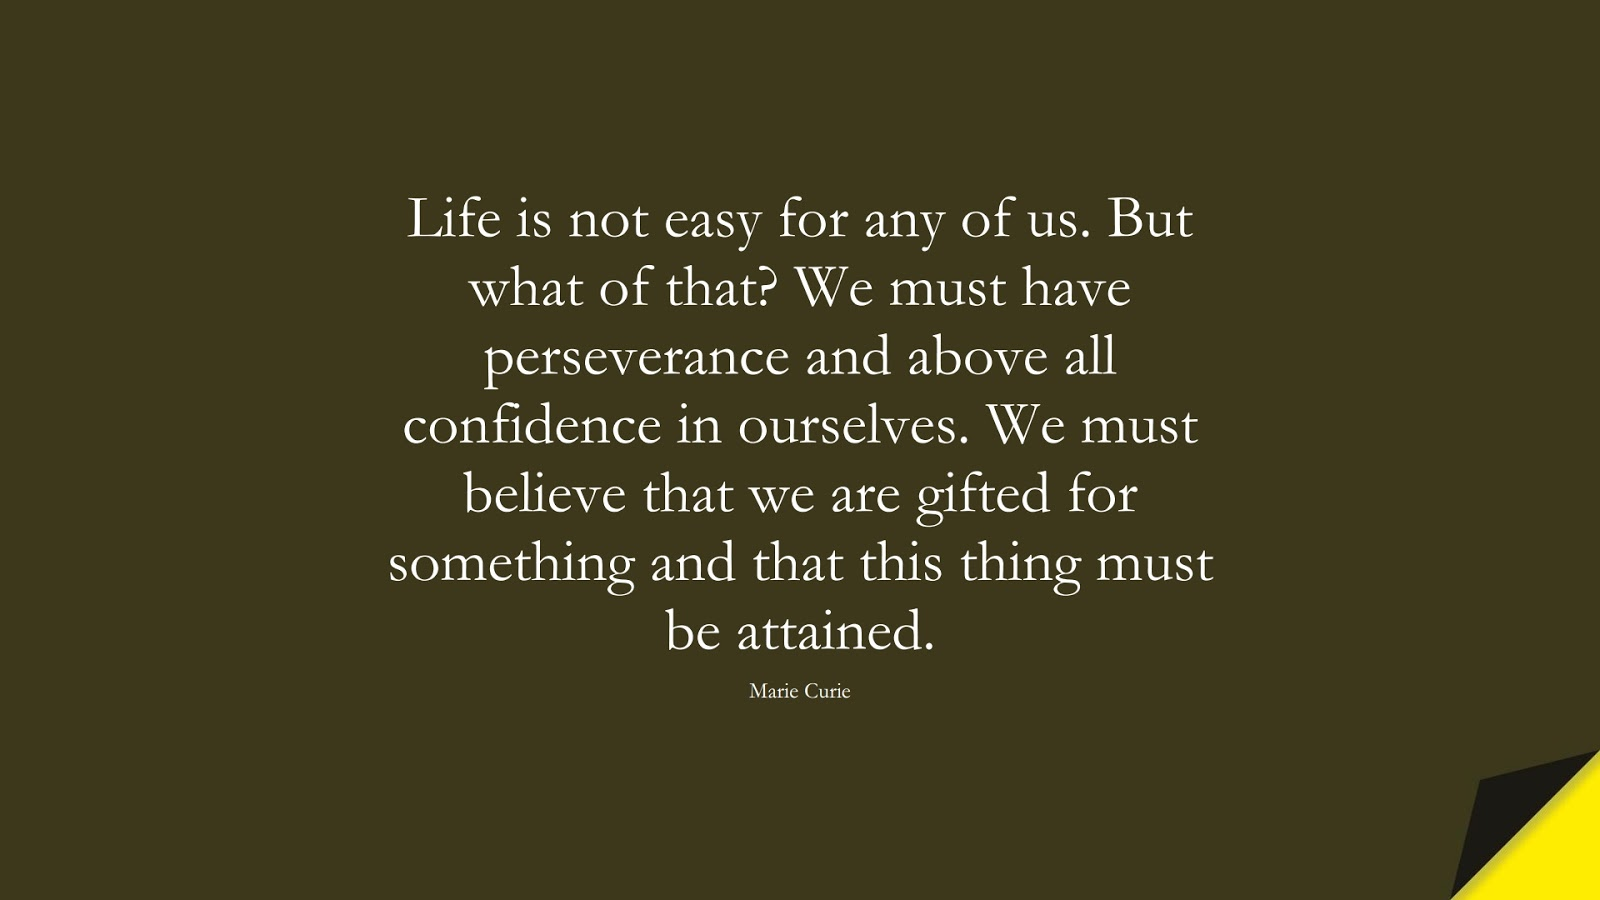 Life is not easy for any of us. But what of that? We must have perseverance and above all confidence in ourselves. We must believe that we are gifted for something and that this thing must be attained. (Marie Curie);  #SelfEsteemQuotes